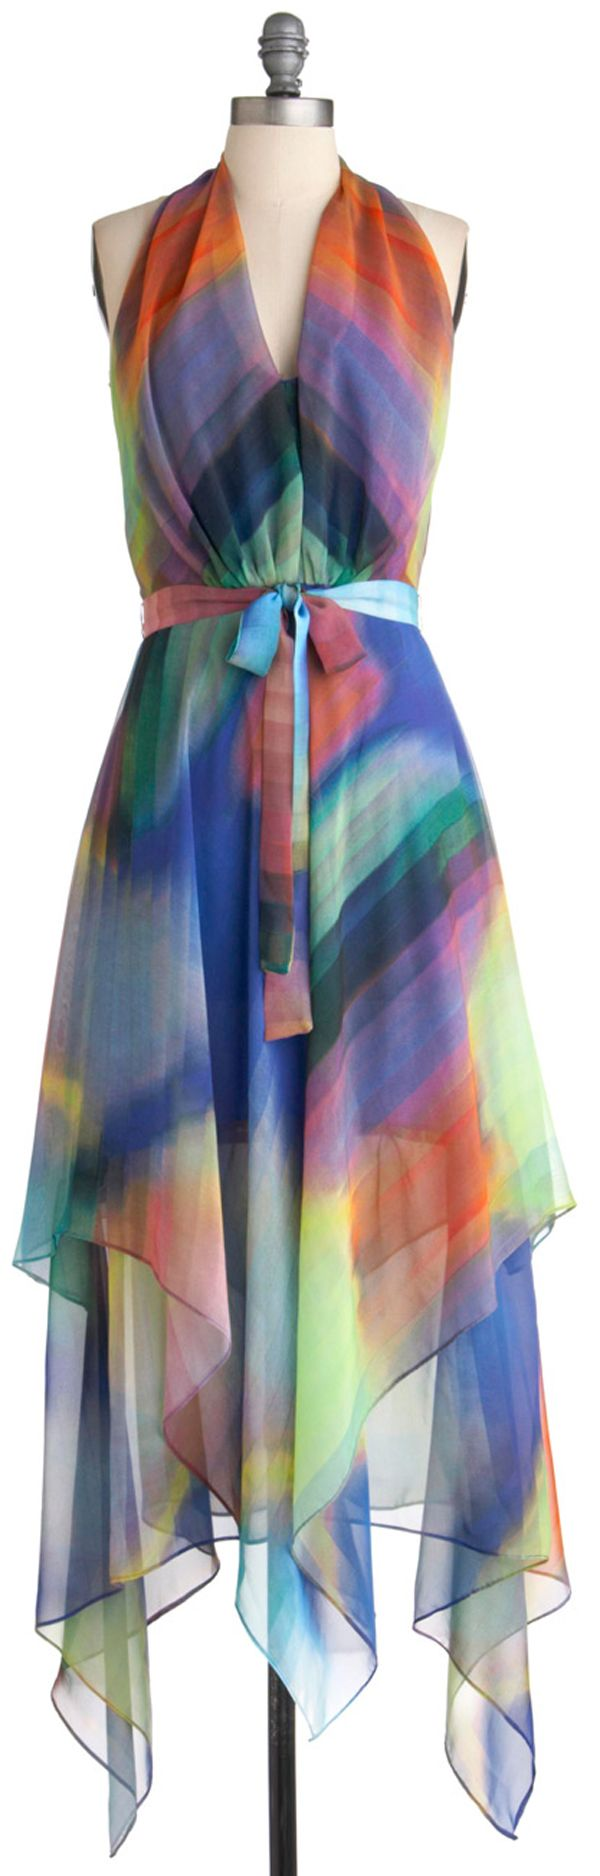 This reminds me so much of the 70s disco dresses - Spectrum of Style ...